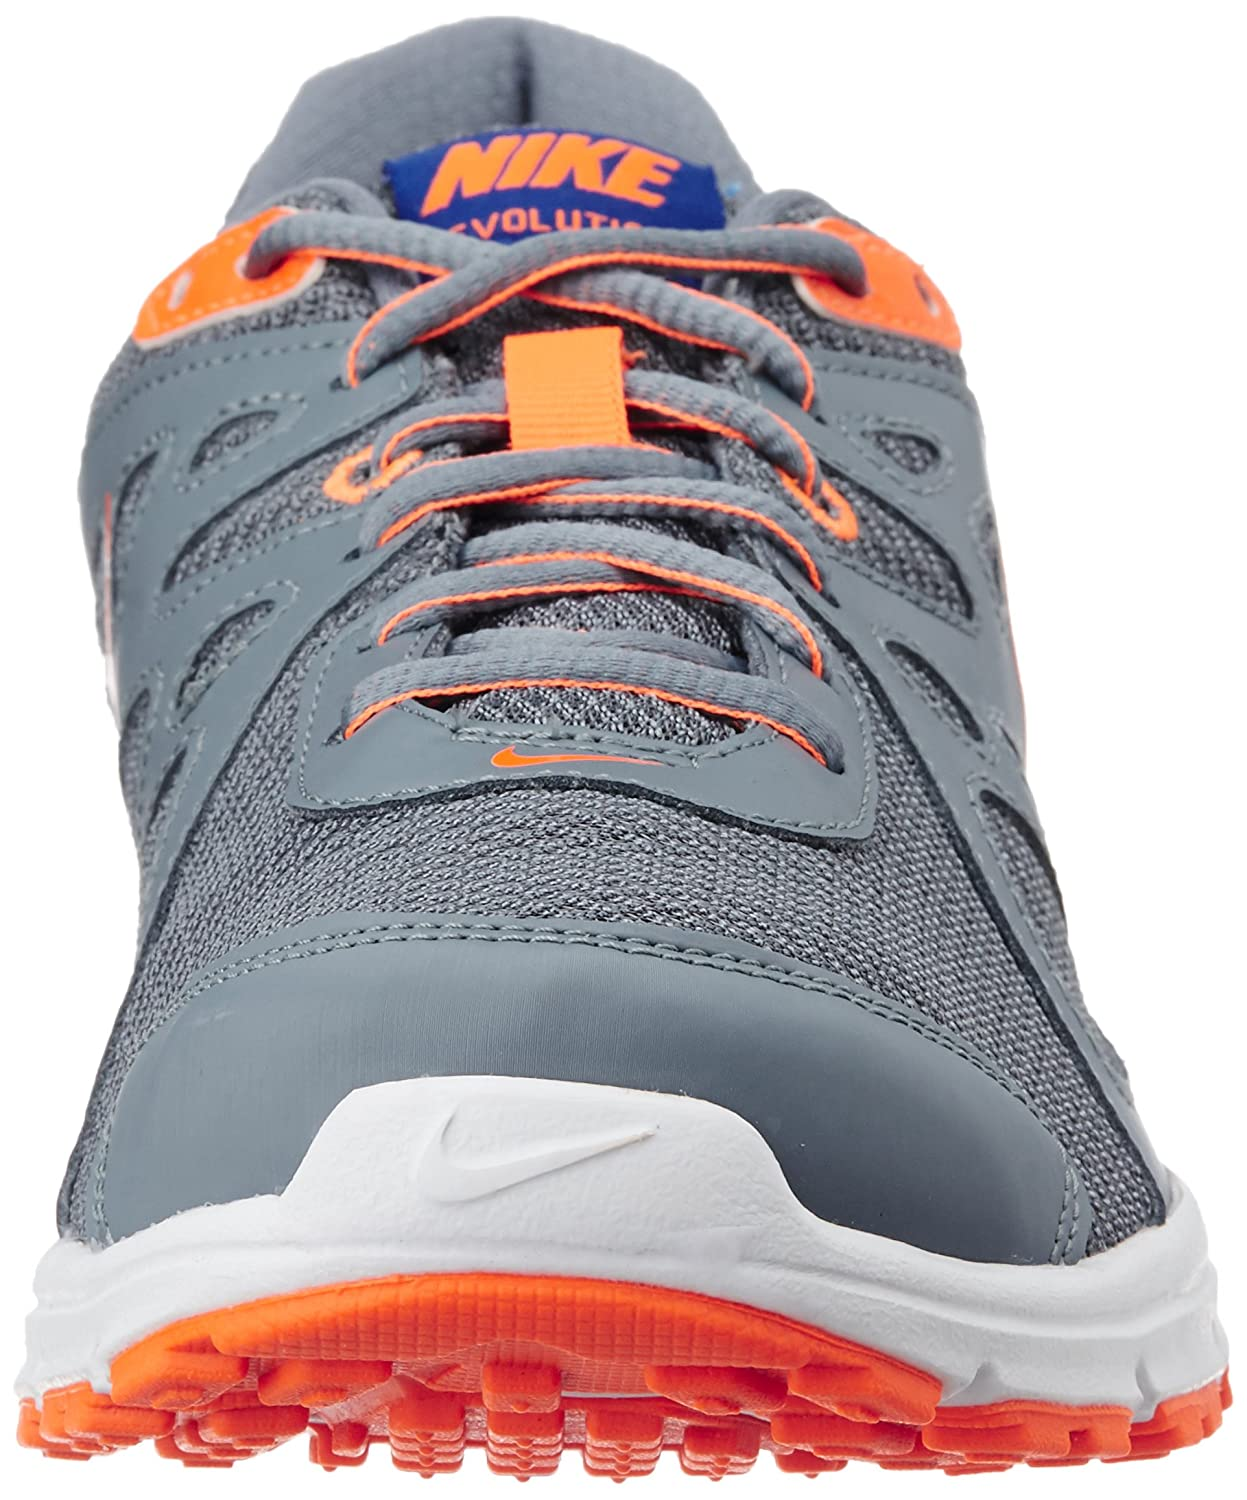 321ad1a0d0f Nike Men s Revolution 2 MSL Running Shoes  Buy Online at Low Prices in India  - Amazon.in